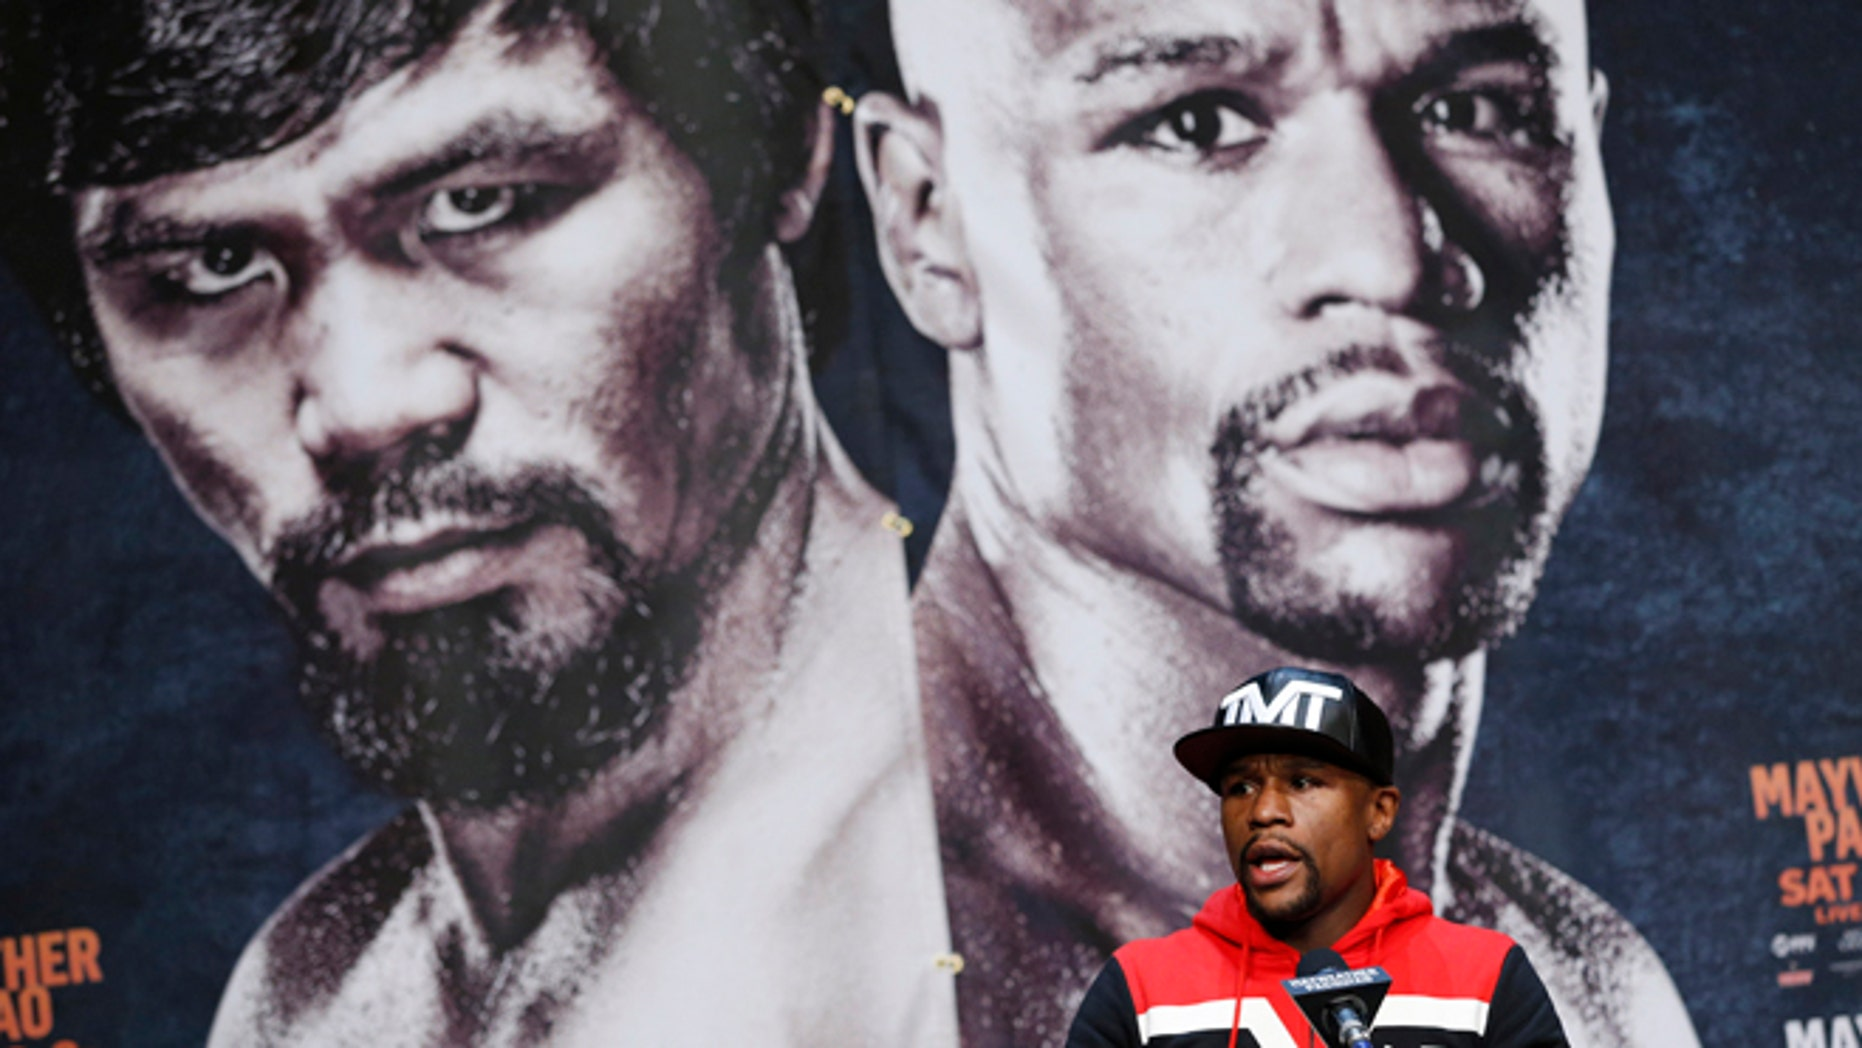 Boxer Floyd Mayweather Jr. speaks during a press conference Wednesday, April 29, 2015, in Las Vegas.